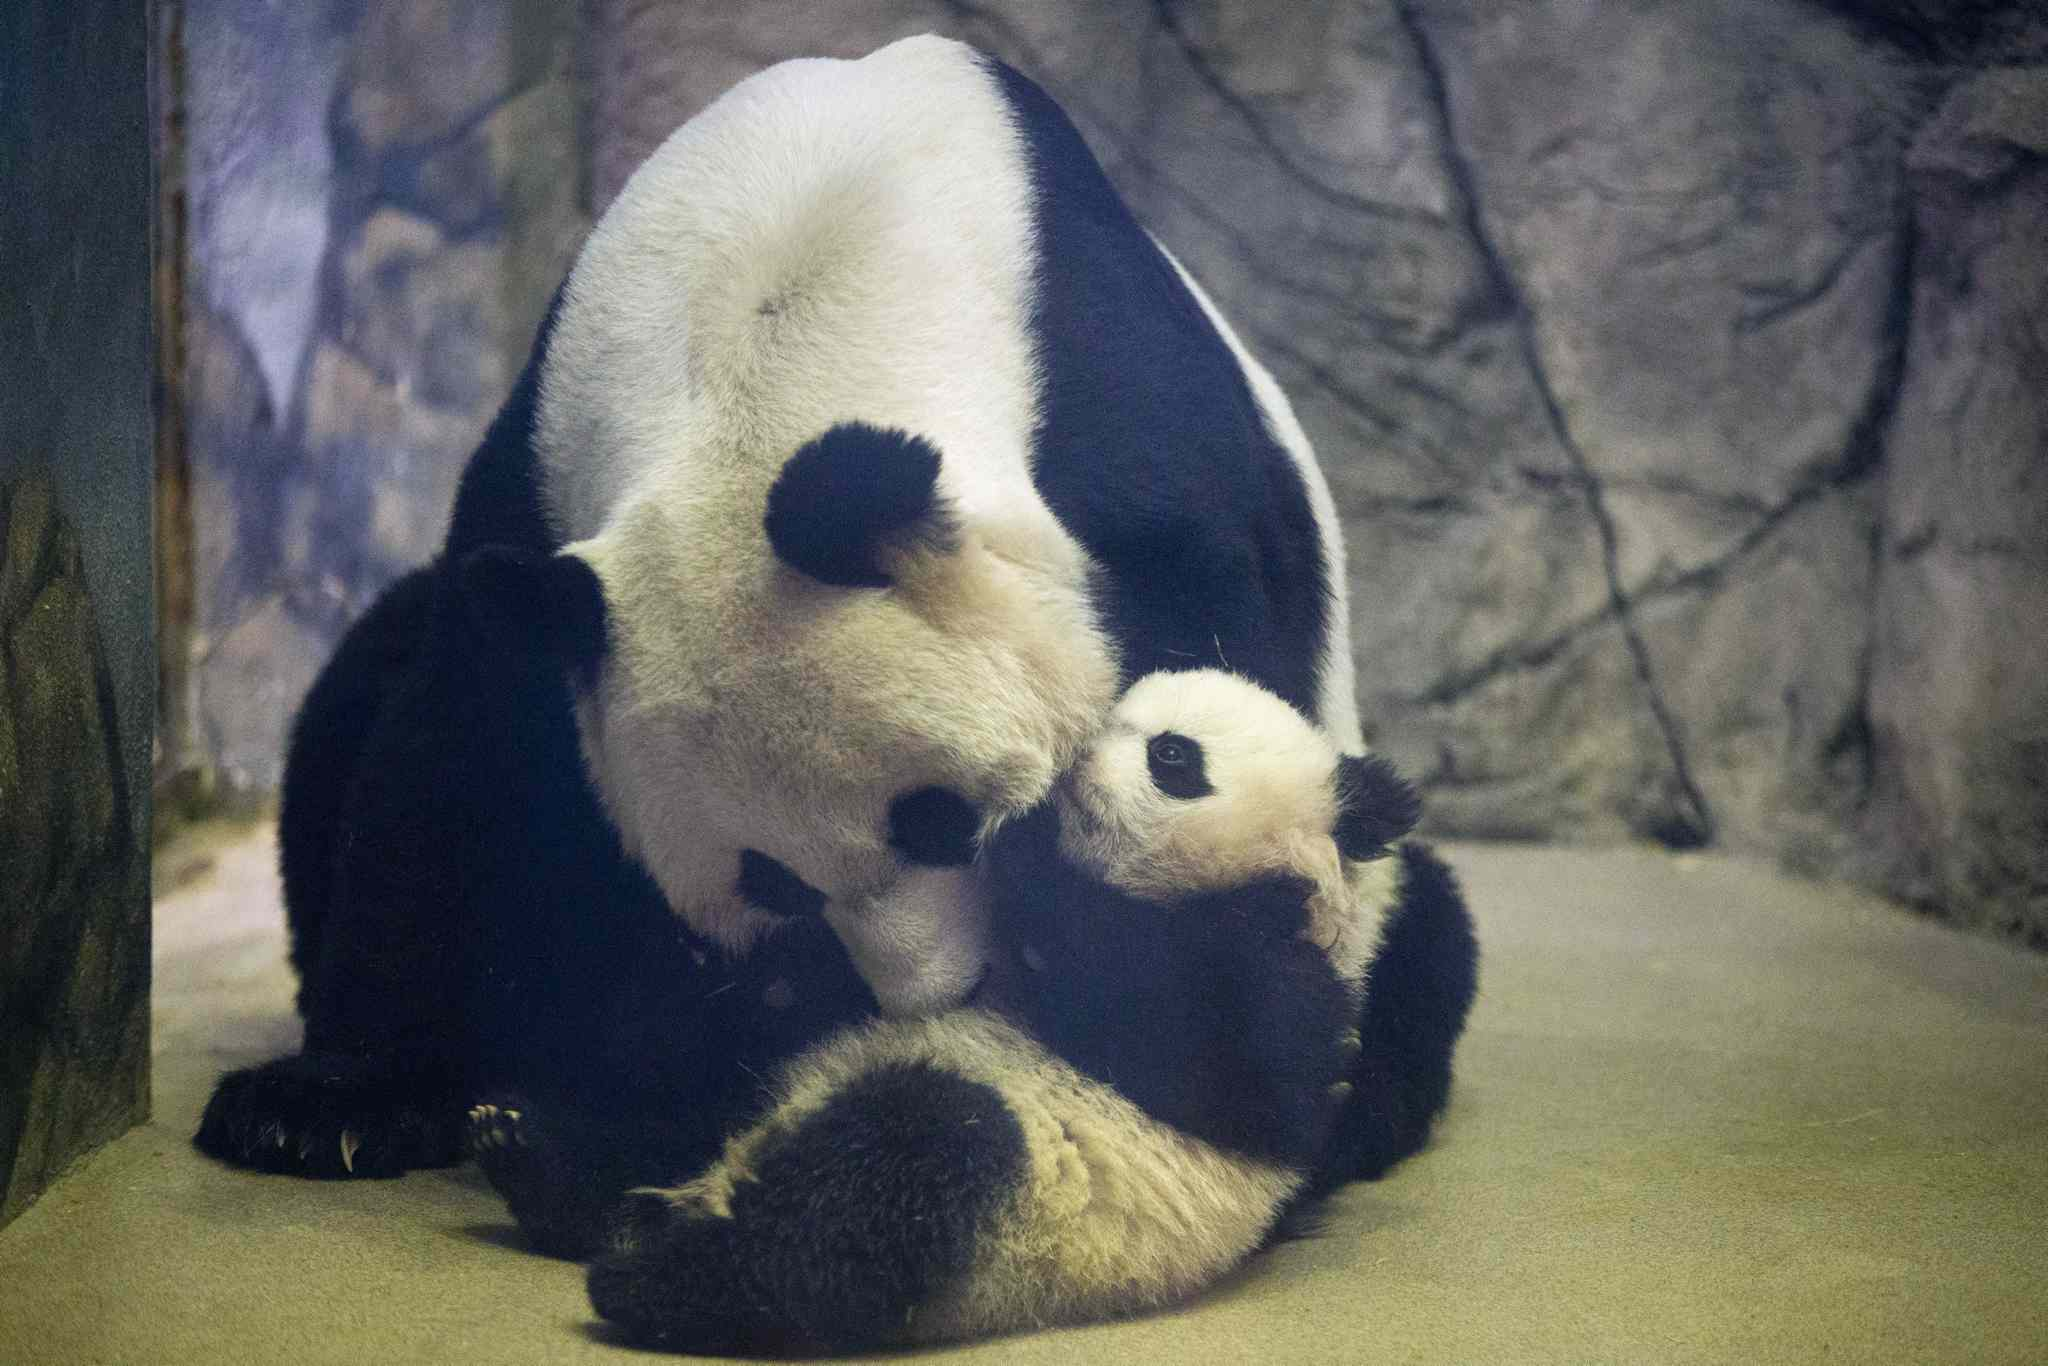 Bao Bao, the four-and-a-half-month-old giant panda cub, is approached by her mother Mei Xiang in their indoor habitat at the Smithsonian's National Zoo in Washington, Jan. 7. Bao Bao was born to the zoo's female giant panda Mei Xiang and male giant panda Tian Tian.